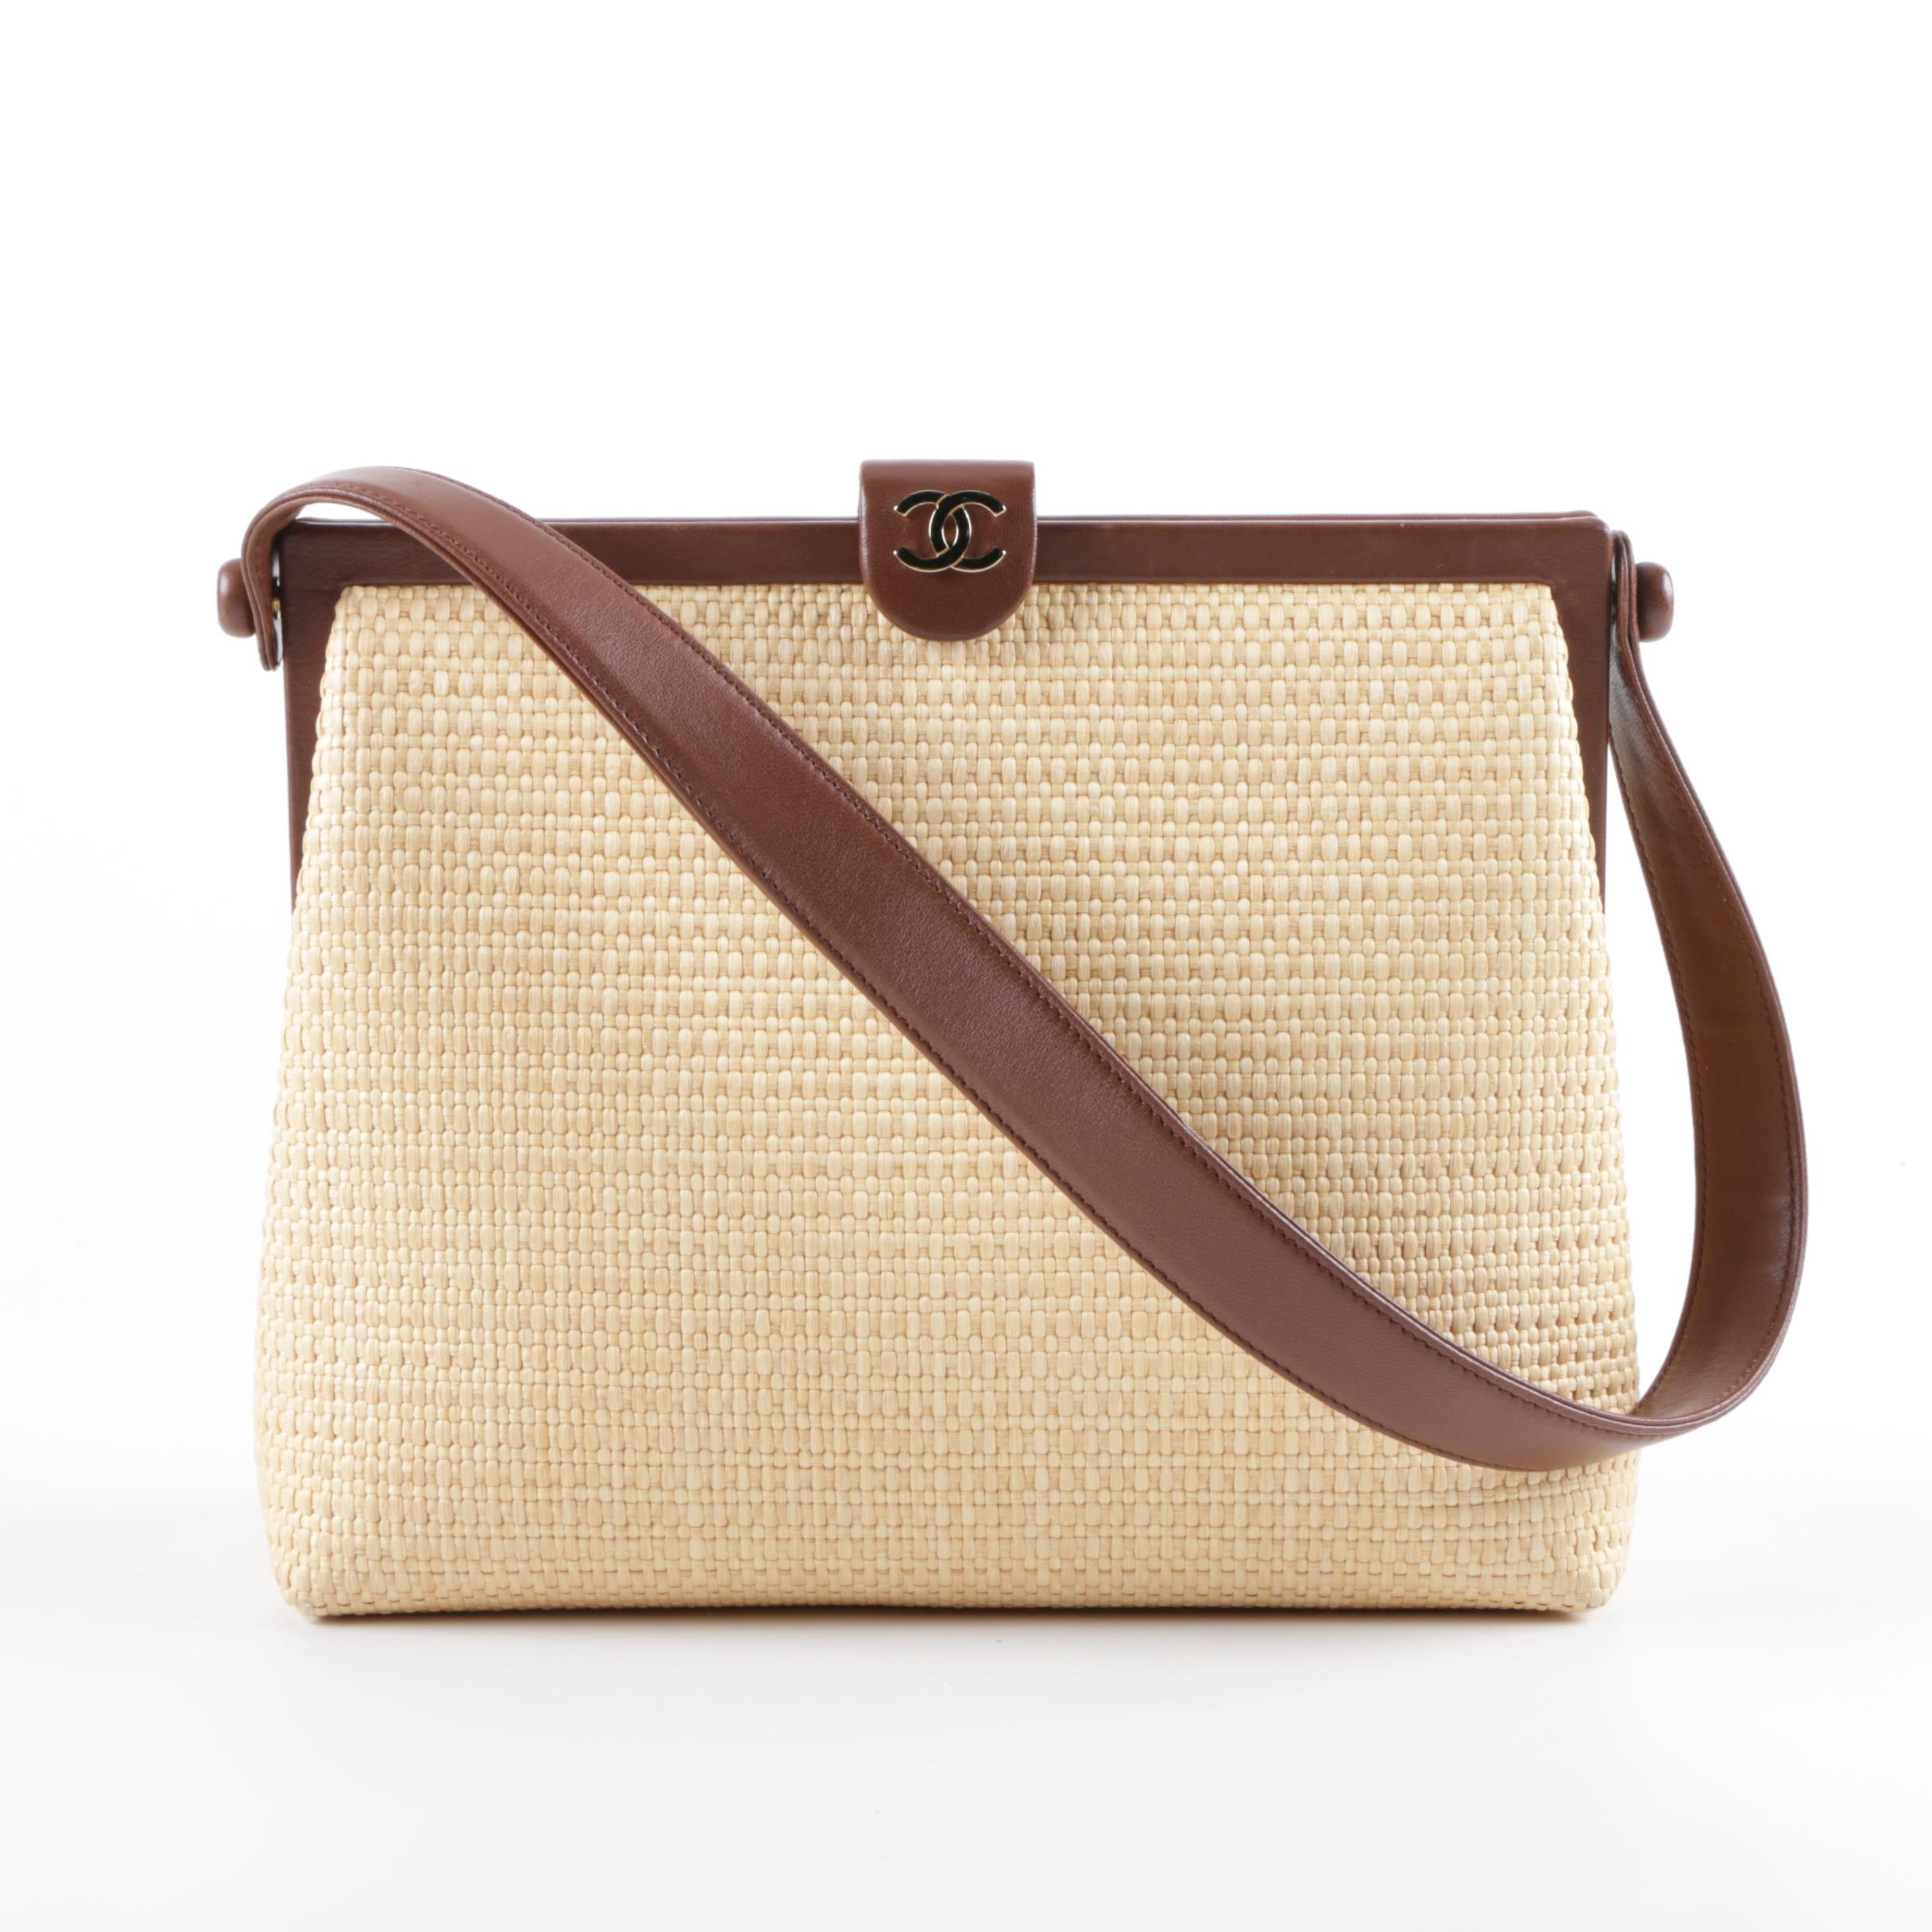 Chanel Woven Straw Handbag with Brown Leather Trim